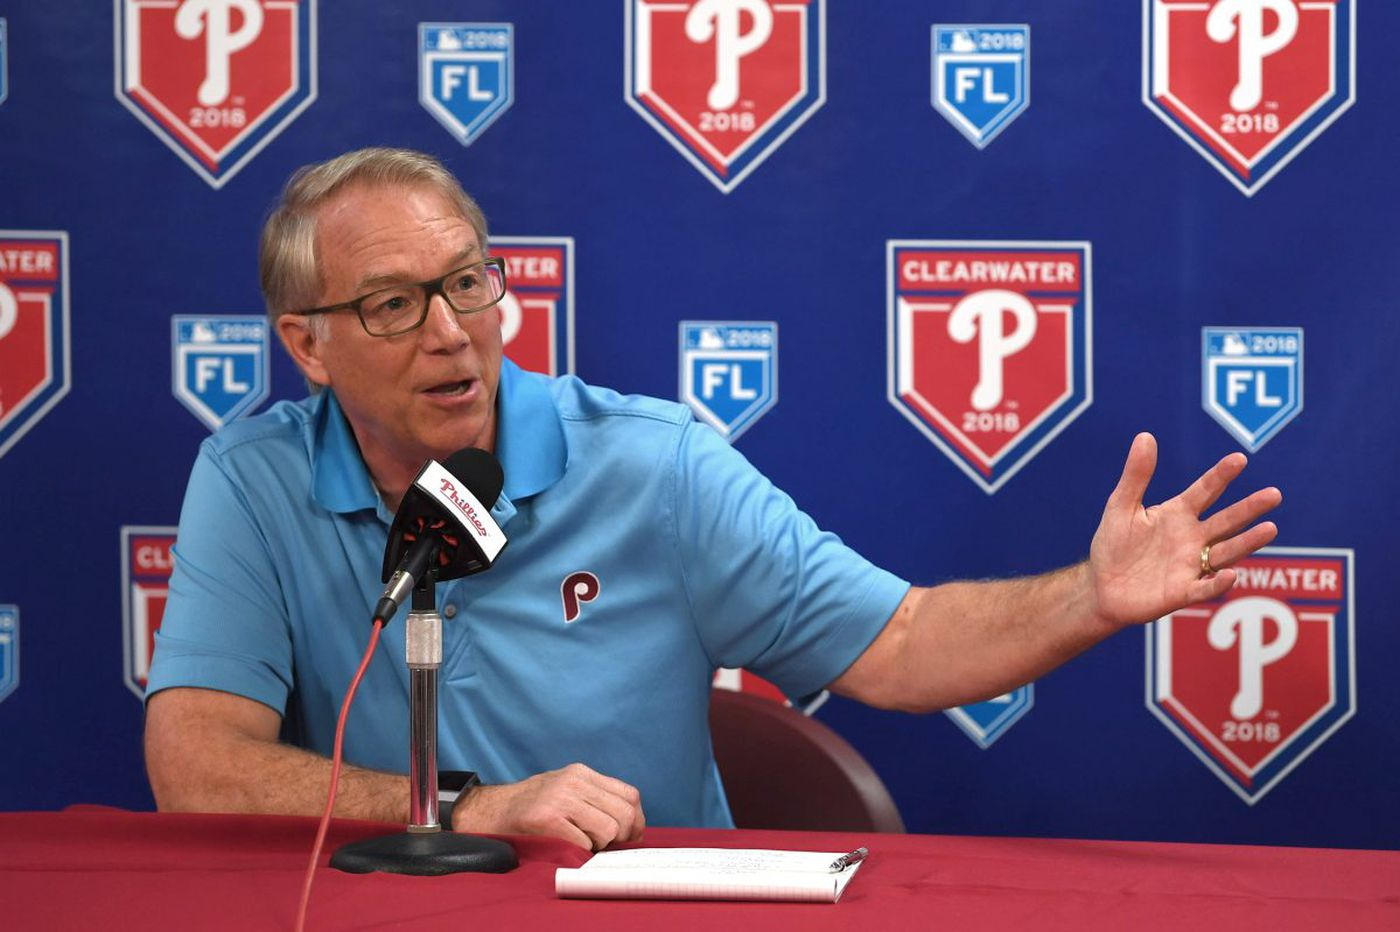 Phillies' Andy MacPhail touts spending that has nothing to do with payroll | Bob Brookover